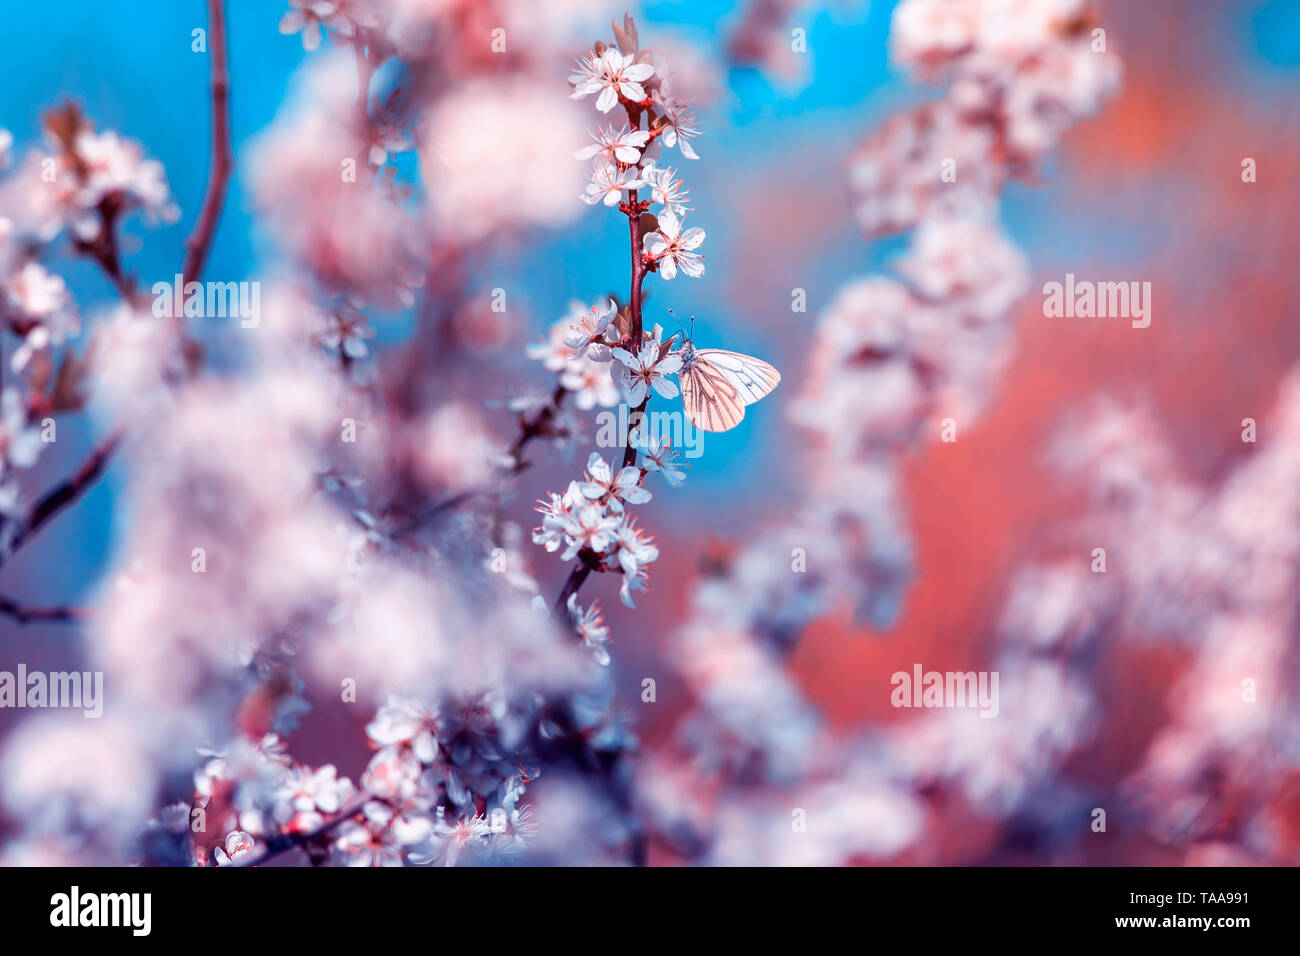 beautiful little butterflies flit over the branches with white the shrub buds blooming in the May warm sunny garden against the bright sun - Stock Image